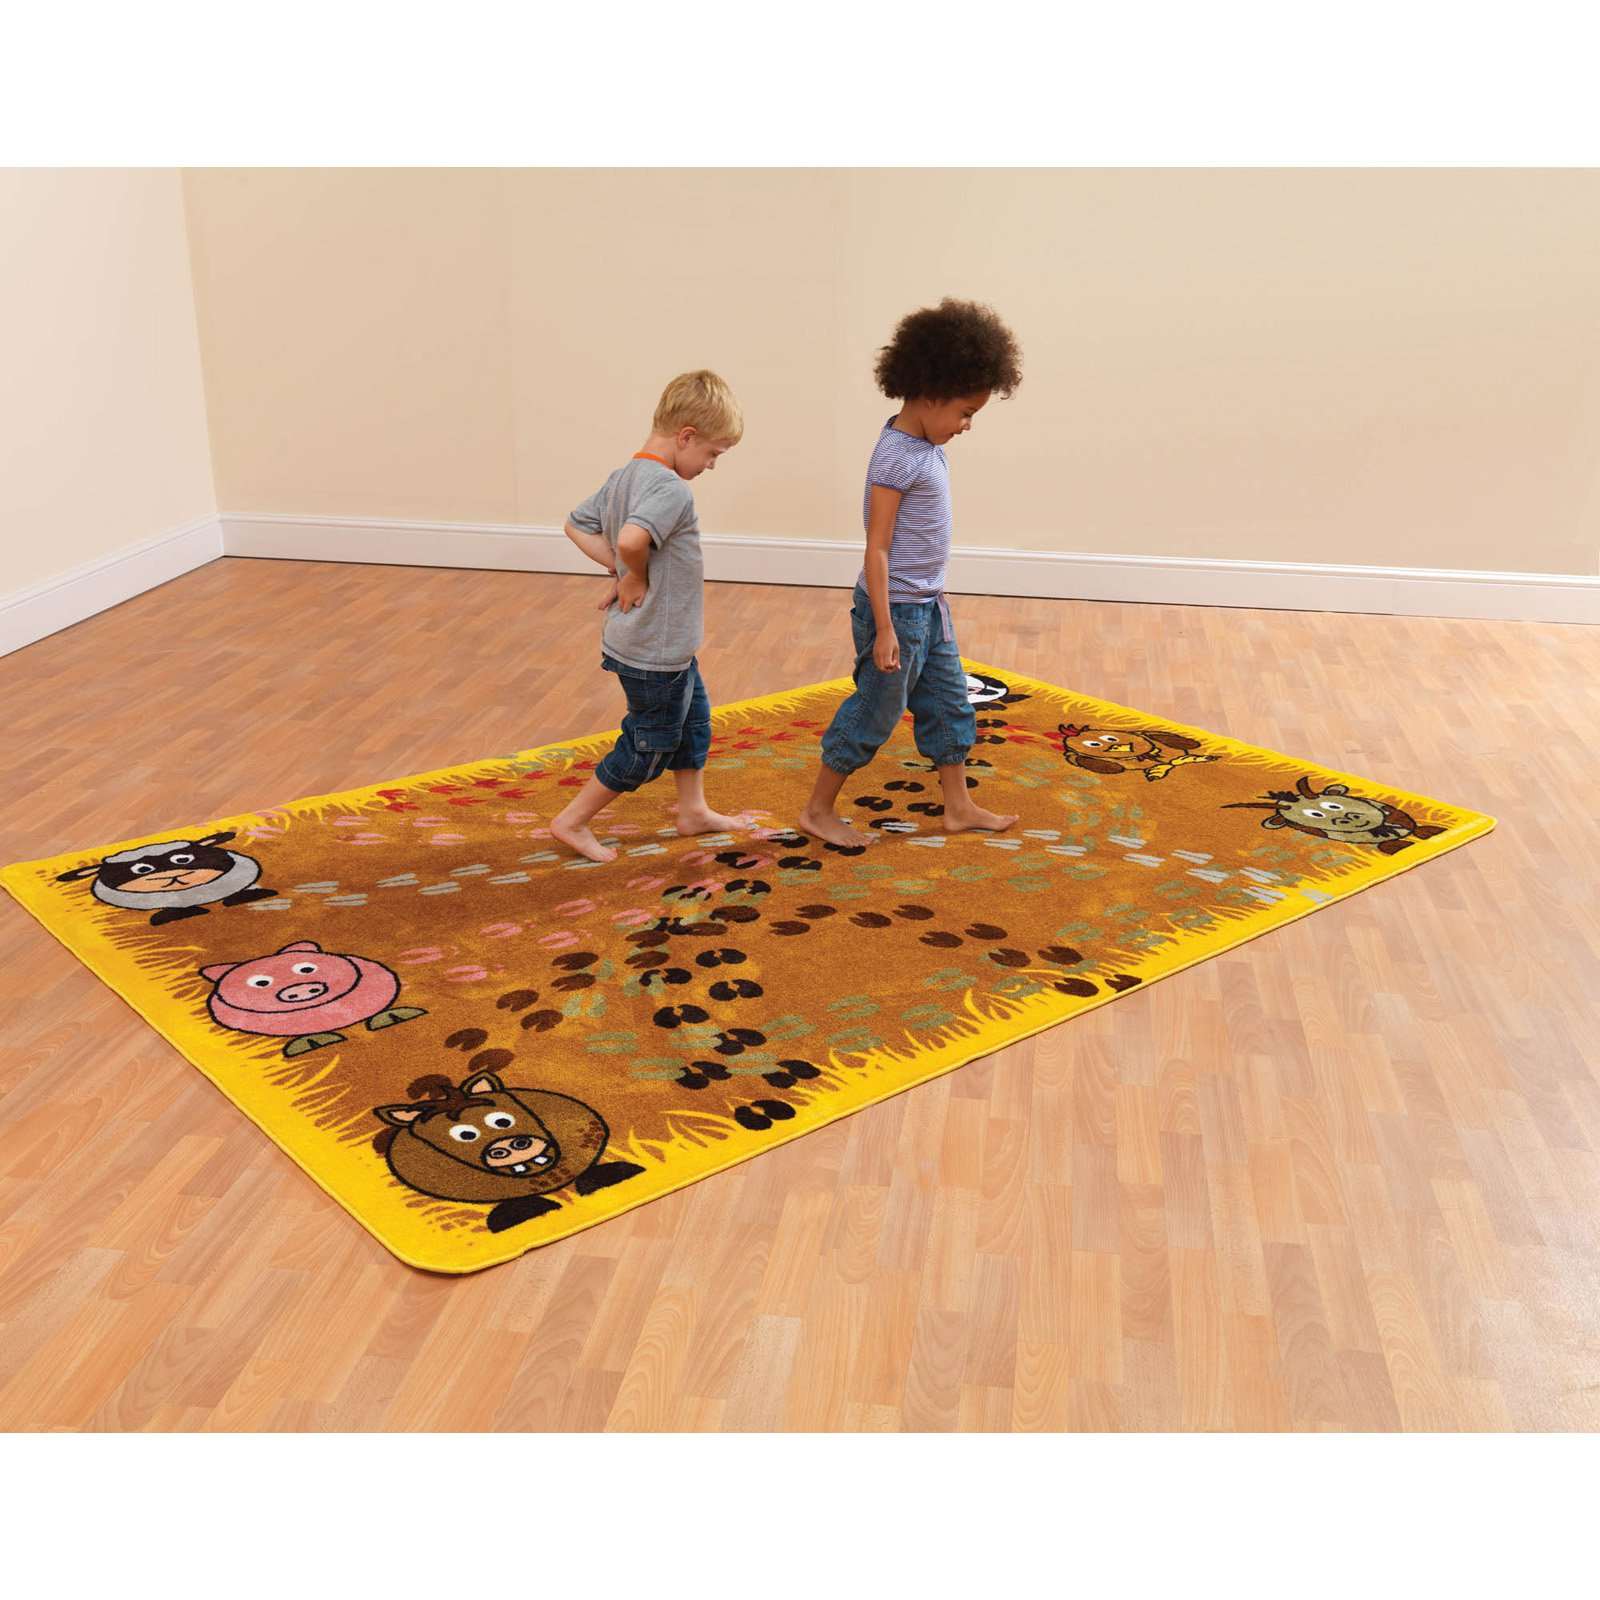 Kalokids Town & Country Follow that Farm Animal Motricity Carpet